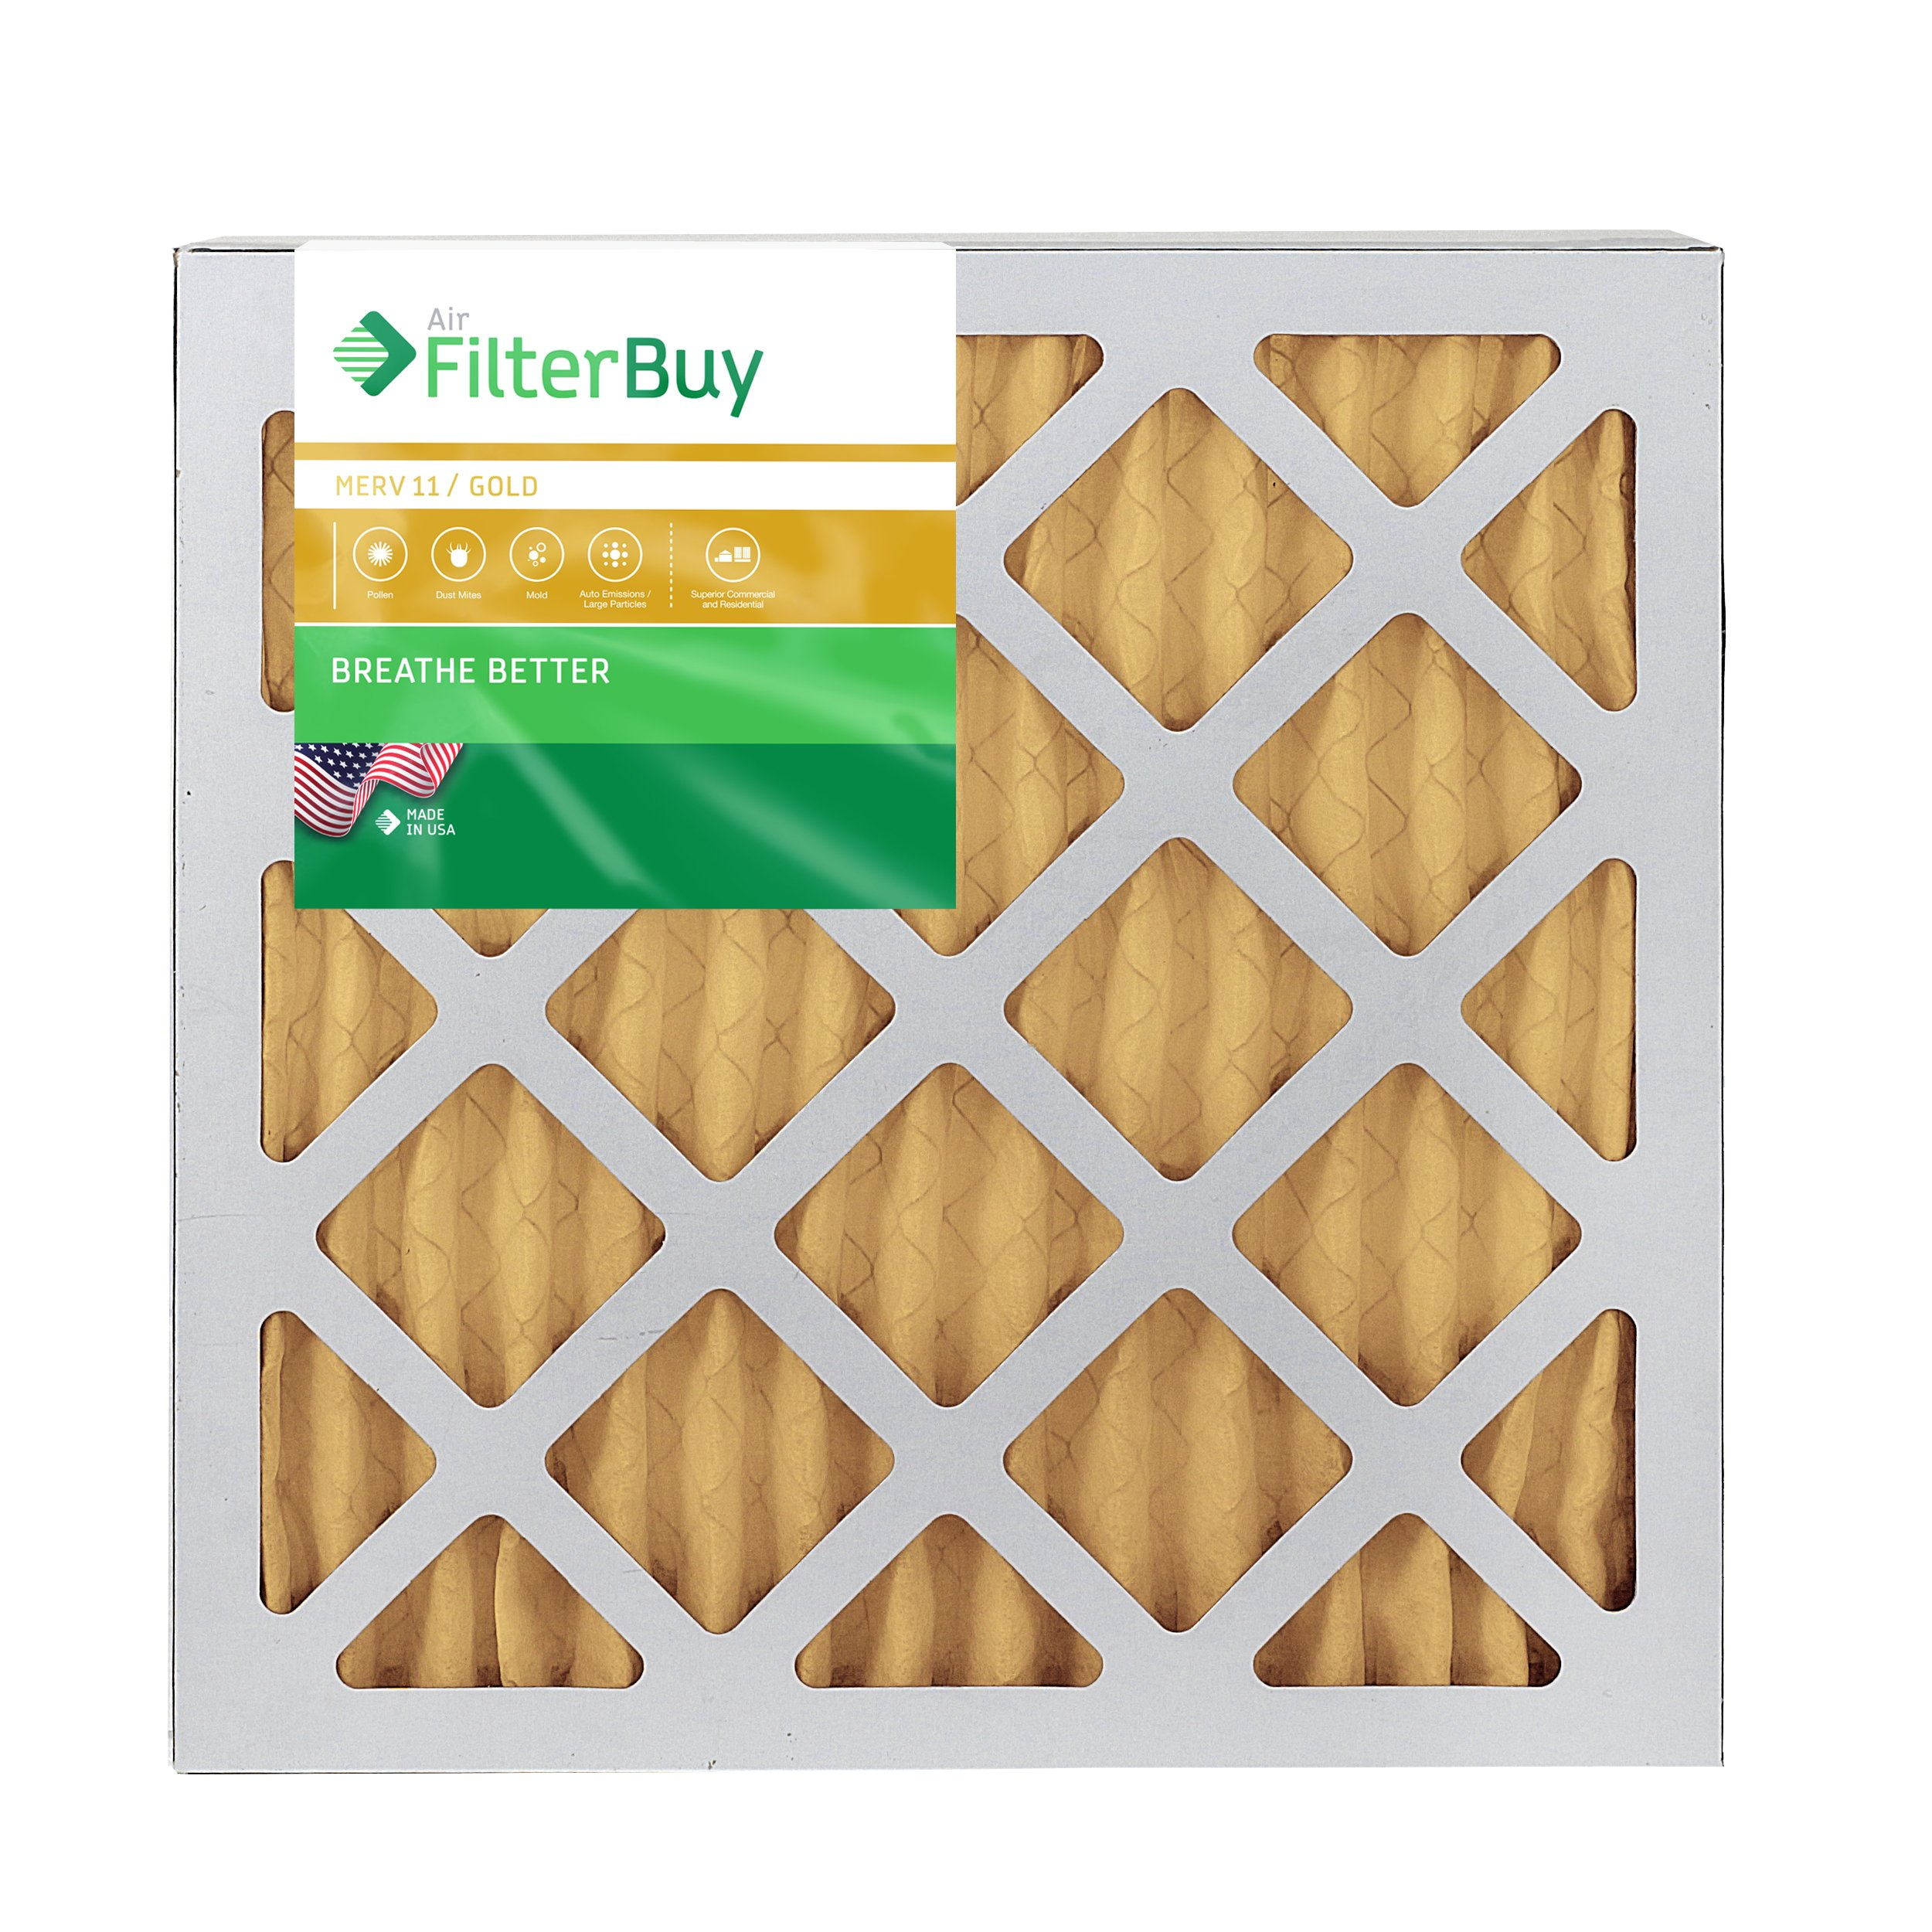 Pack of 2 Filters FilterBuy 25x25x1 MERV 11 Pleated AC Furnace Air Filter, 25x25x1 Gold